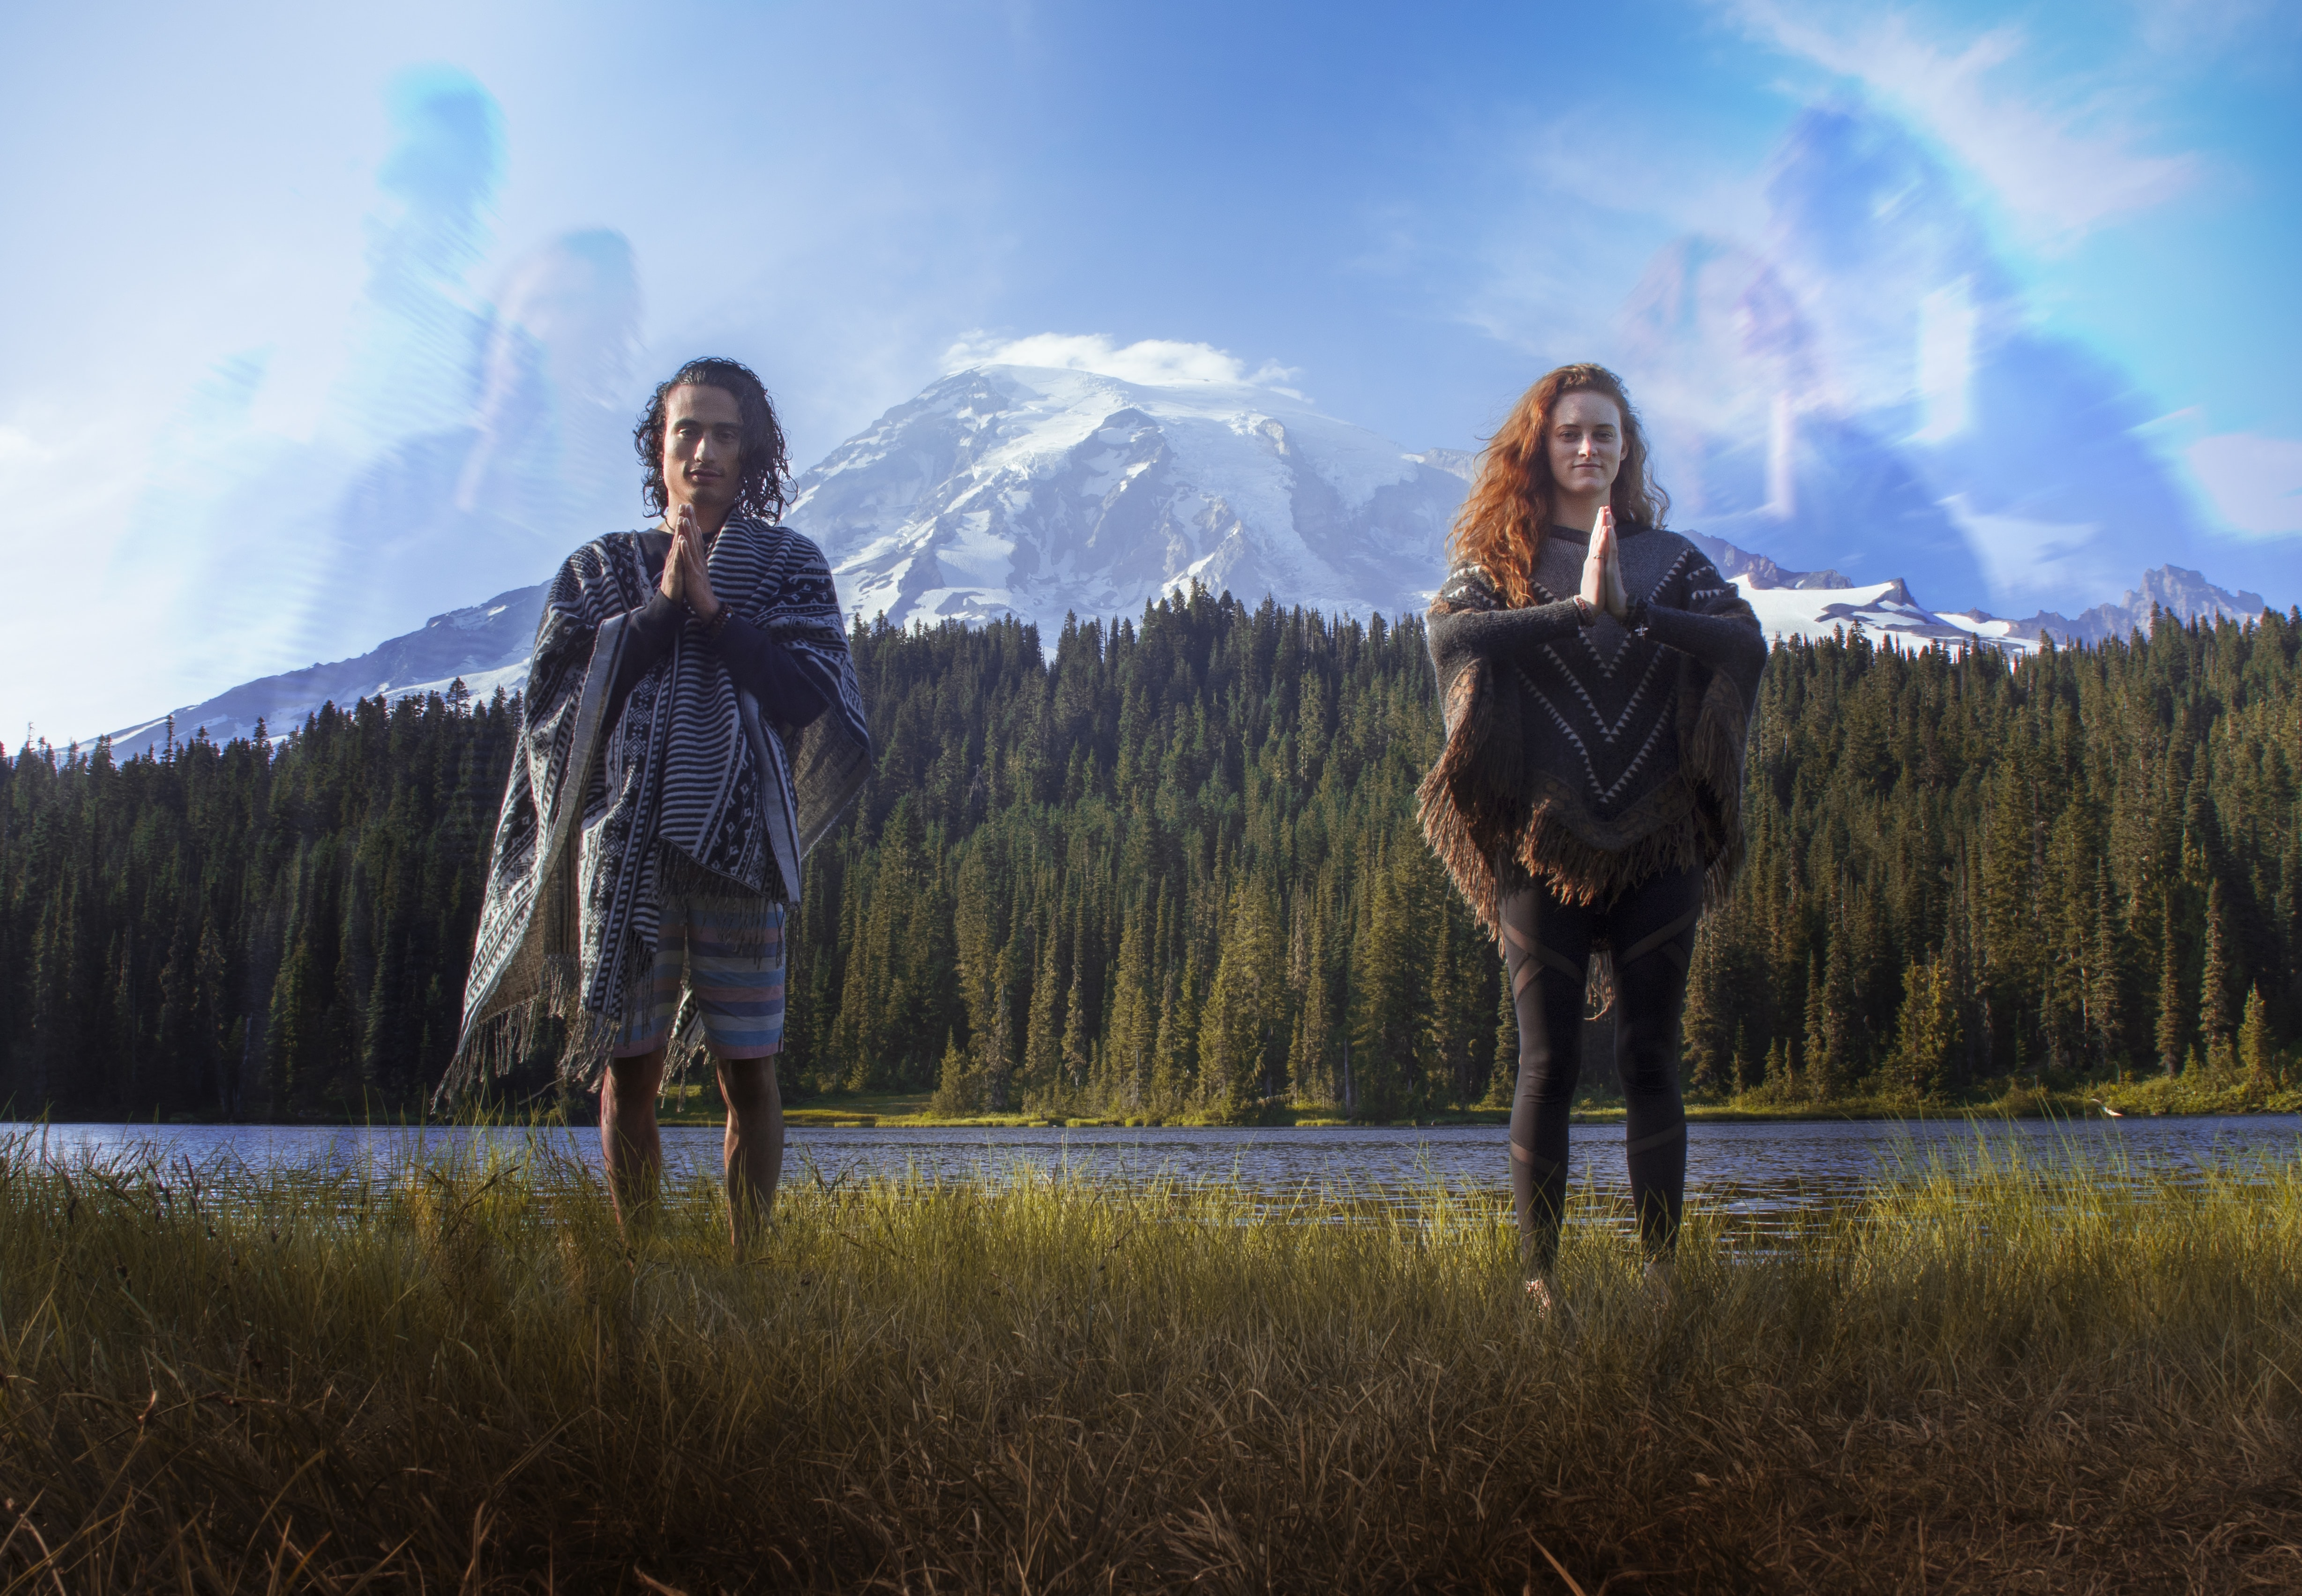 man and woman standing on green grass with snow-capped mountain at distance